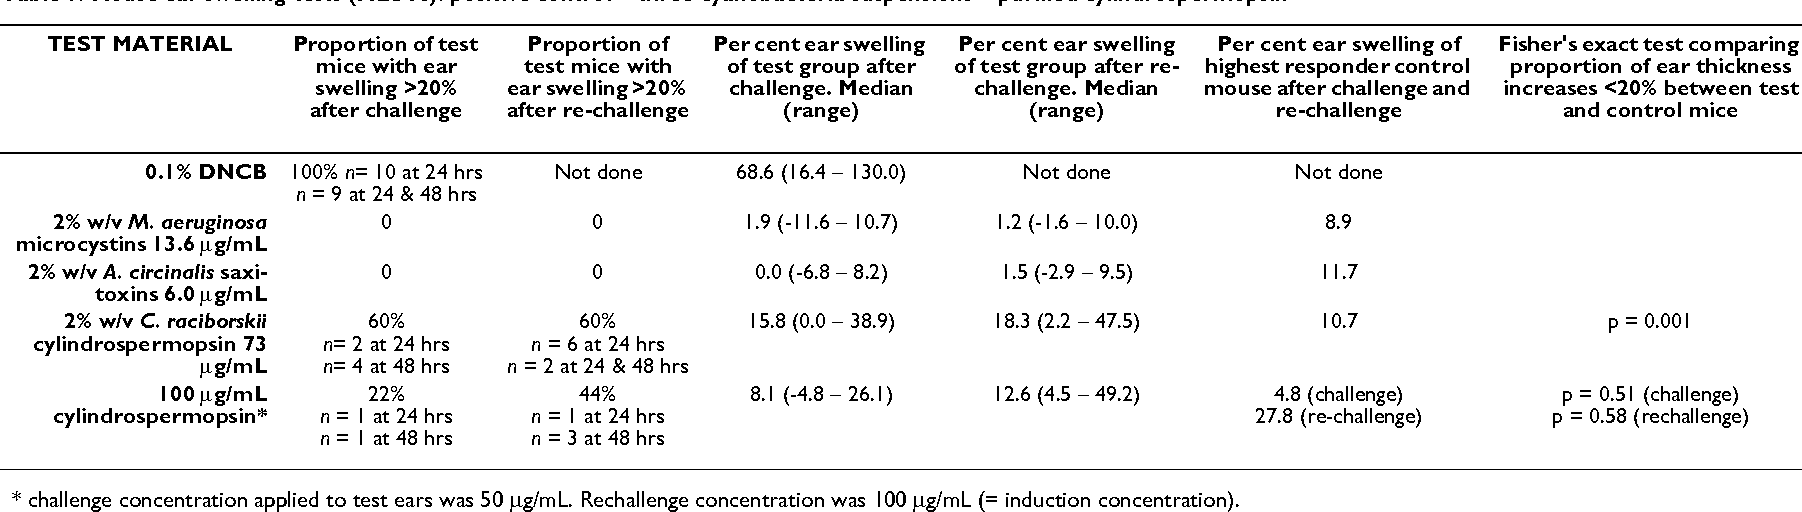 Table 1: Mouse ear swelling tests (MESTs): positive control + three cyanobacteria suspensions + purified cylindrospermopsin